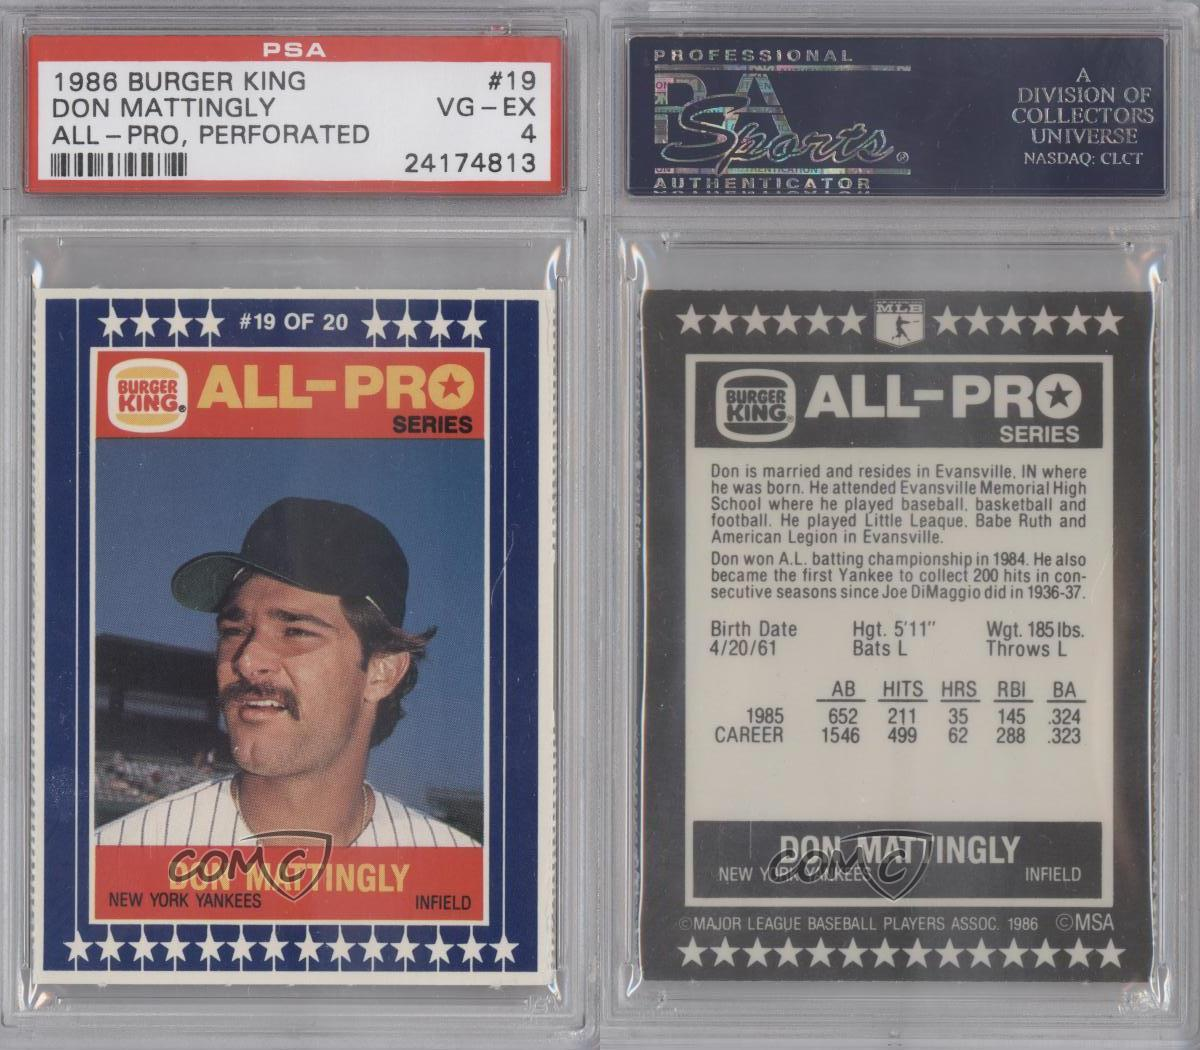 1986 Burger King All Pro 19 Don Mattingly Psa 4 New York